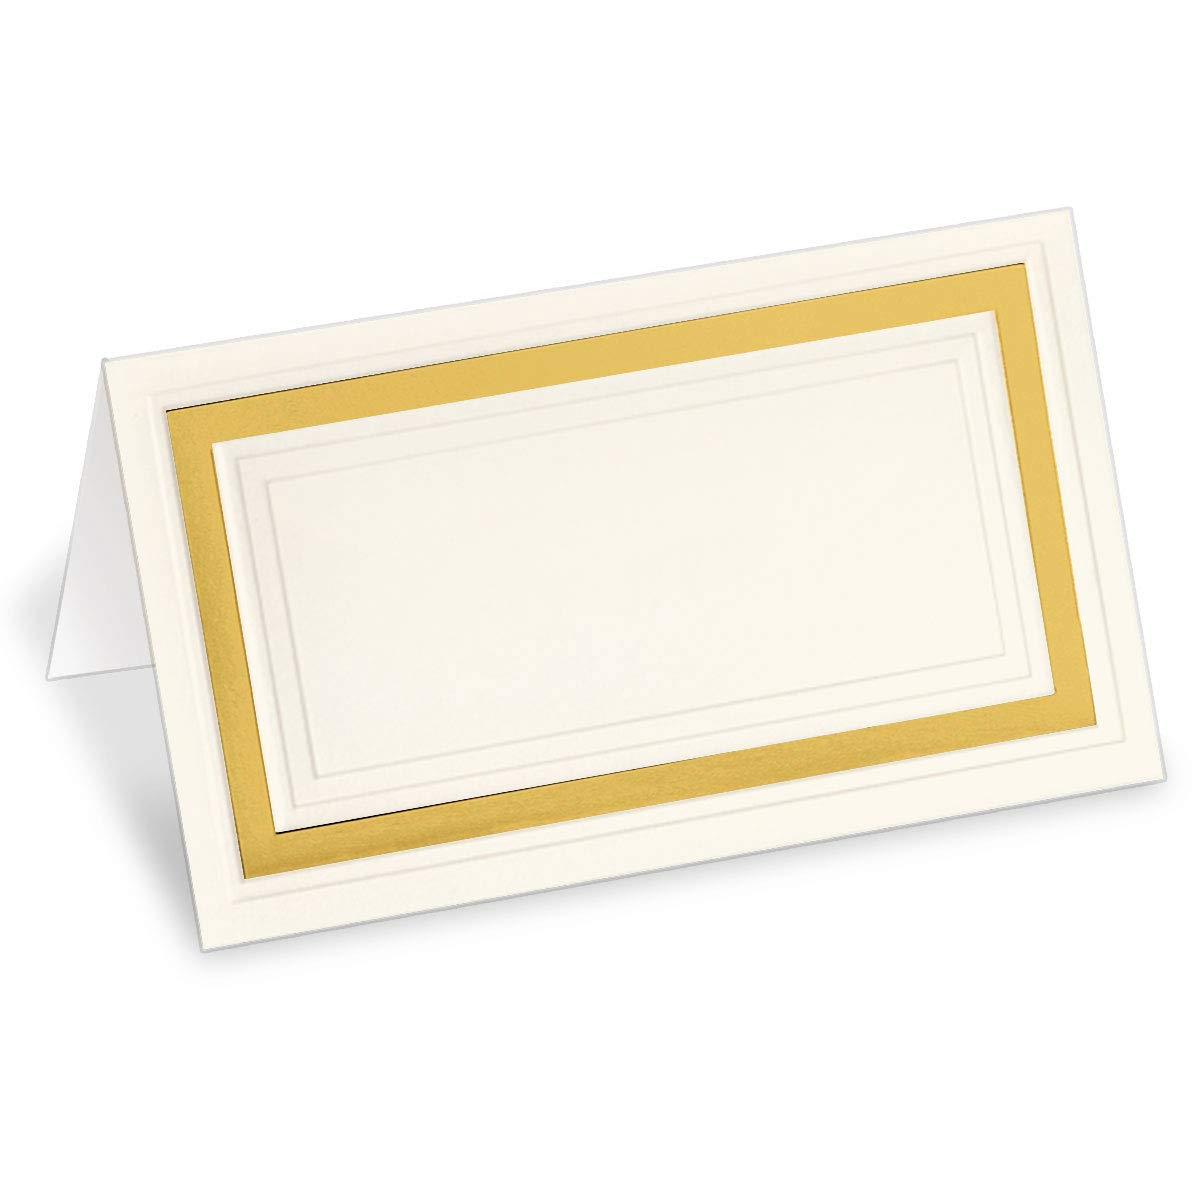 PaperDirect Cream 38lb Cover Stock Folded Place Cards with Gold Foil Border, Micro-Perforated, 2'' x 3 1/2'', 100/Pack, Laser and Inkjet Compatible by PaperDirect